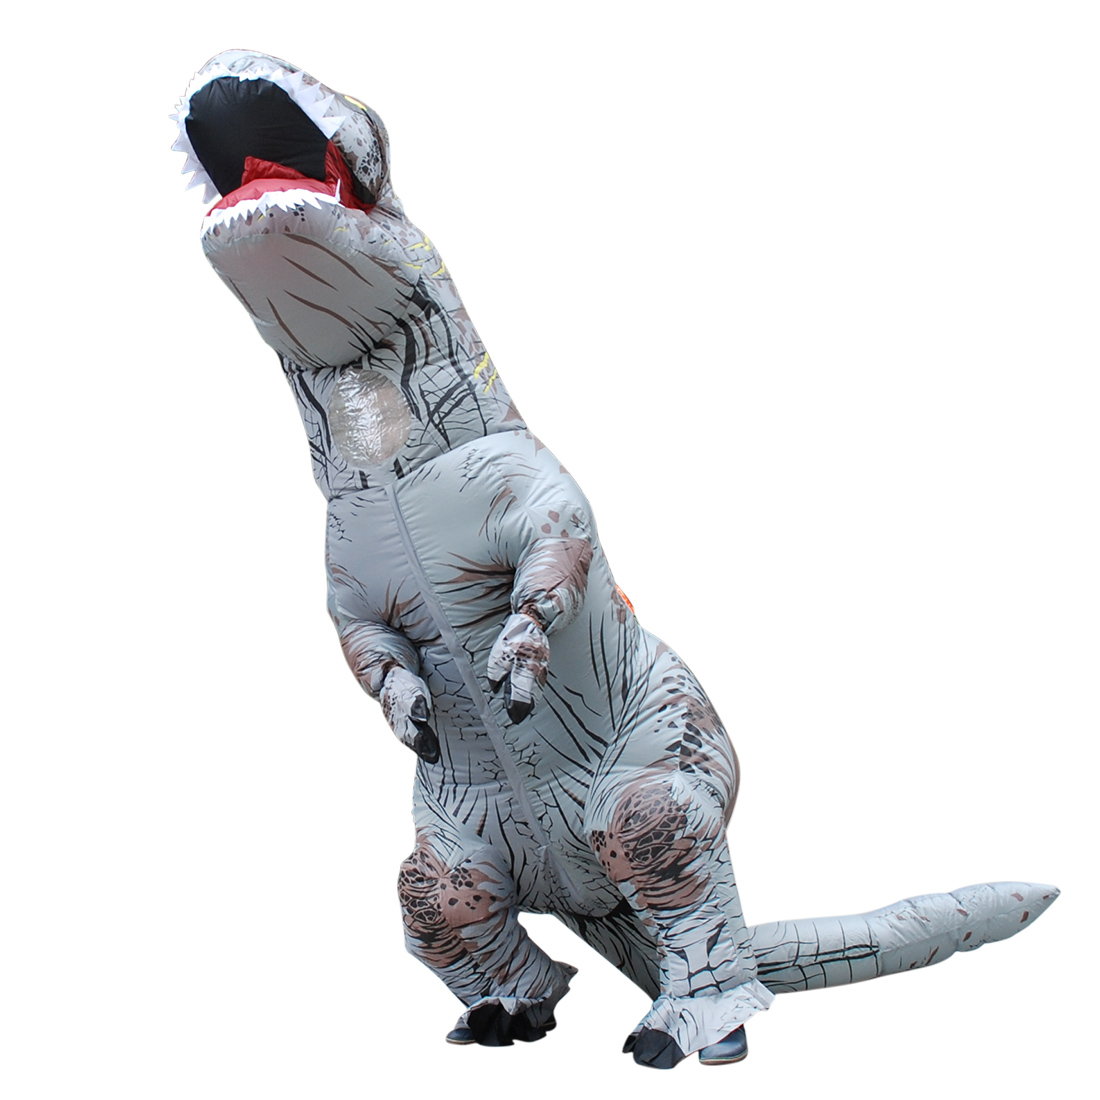 Sexy Woman Cosplay Inflatable Dinosaur Costume - Fan Operated Adult Kids Size Halloween Animal Costumes Dino Rider T-Rex